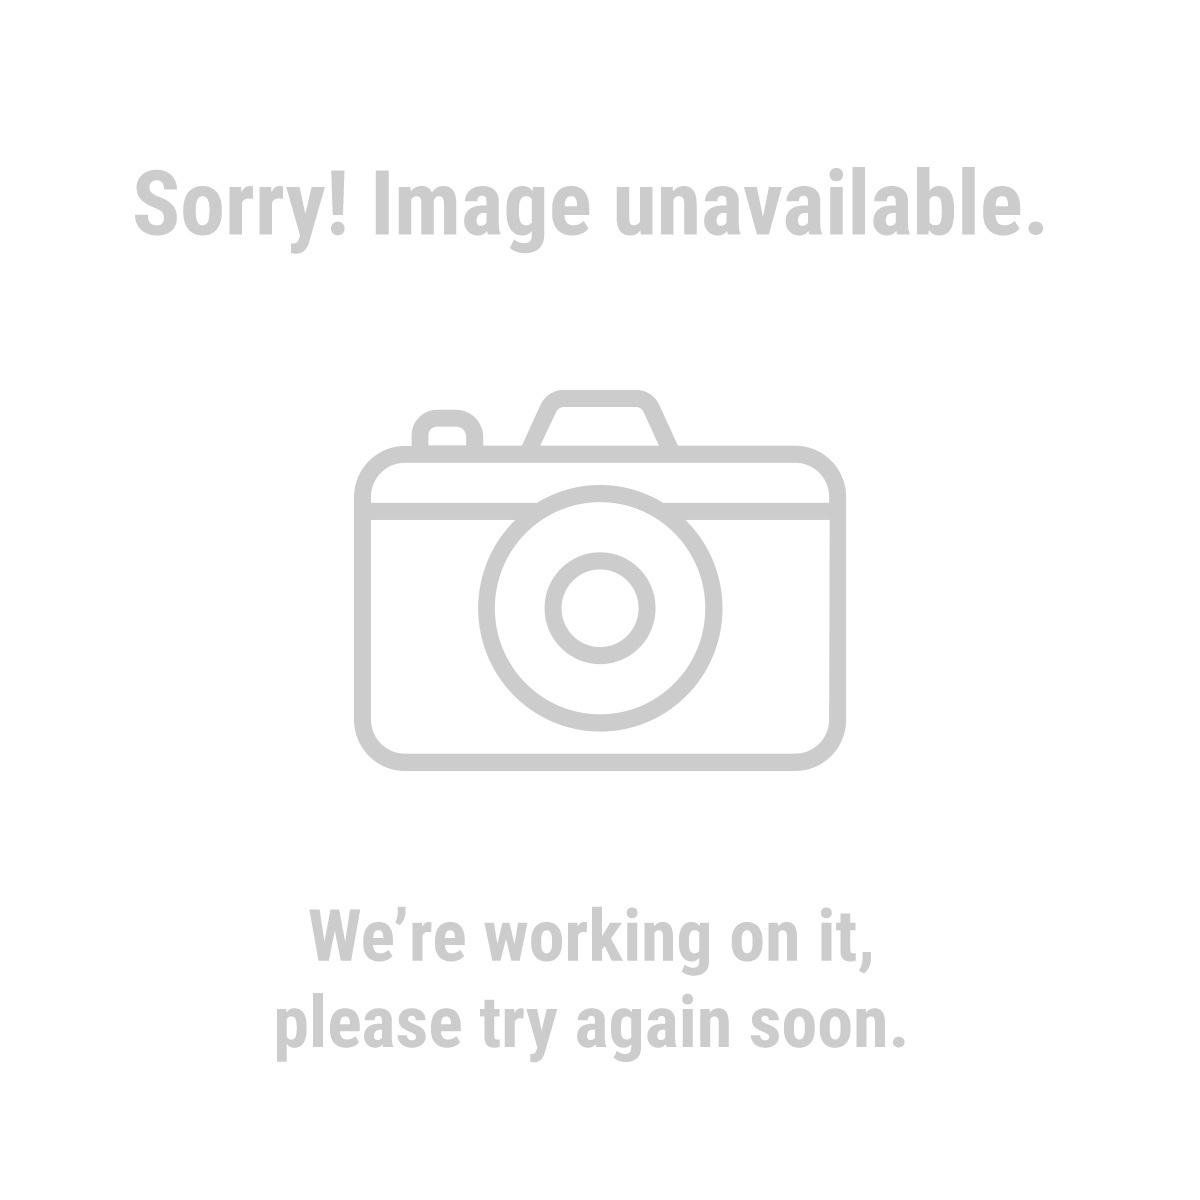 Pittsburgh Automotive 60569 Racing Jack with Rapid Pump®, Compact, 1.5 Ton, Aluminum